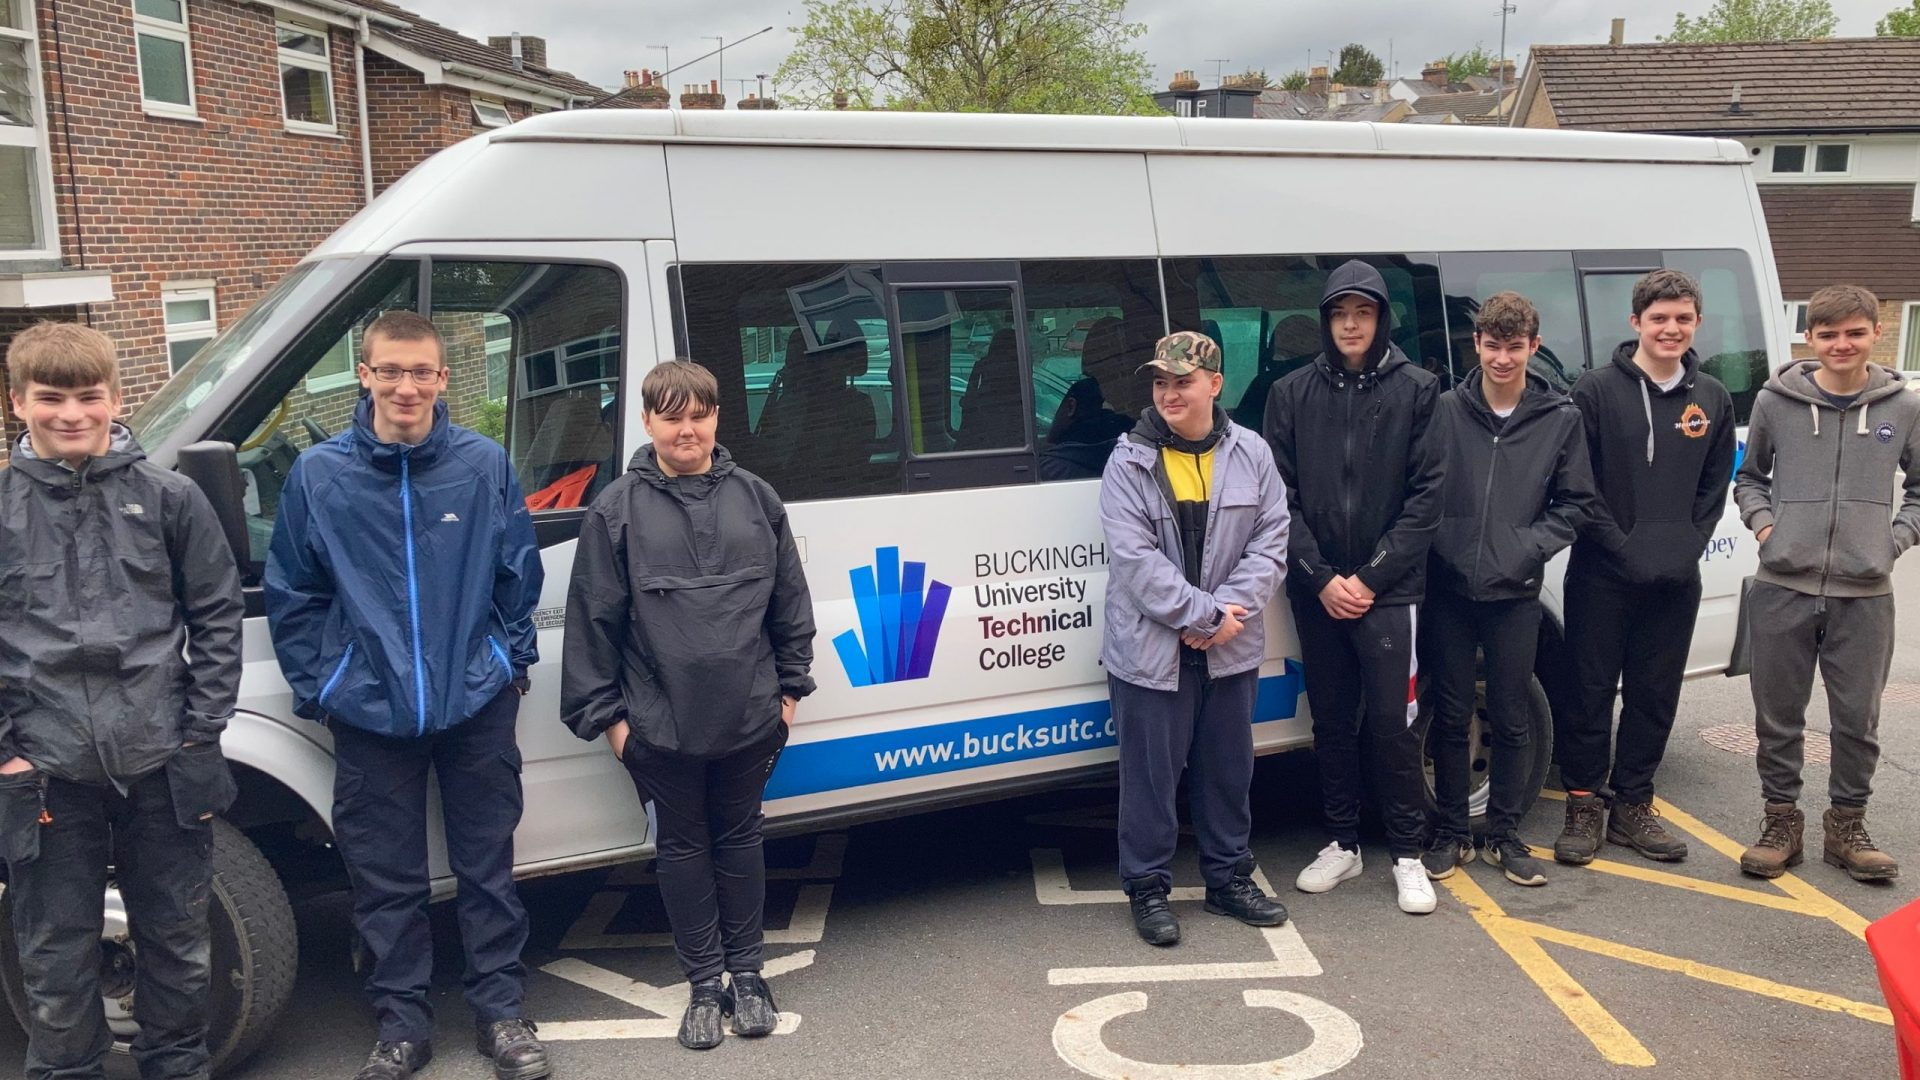 Students stood in front of minibus